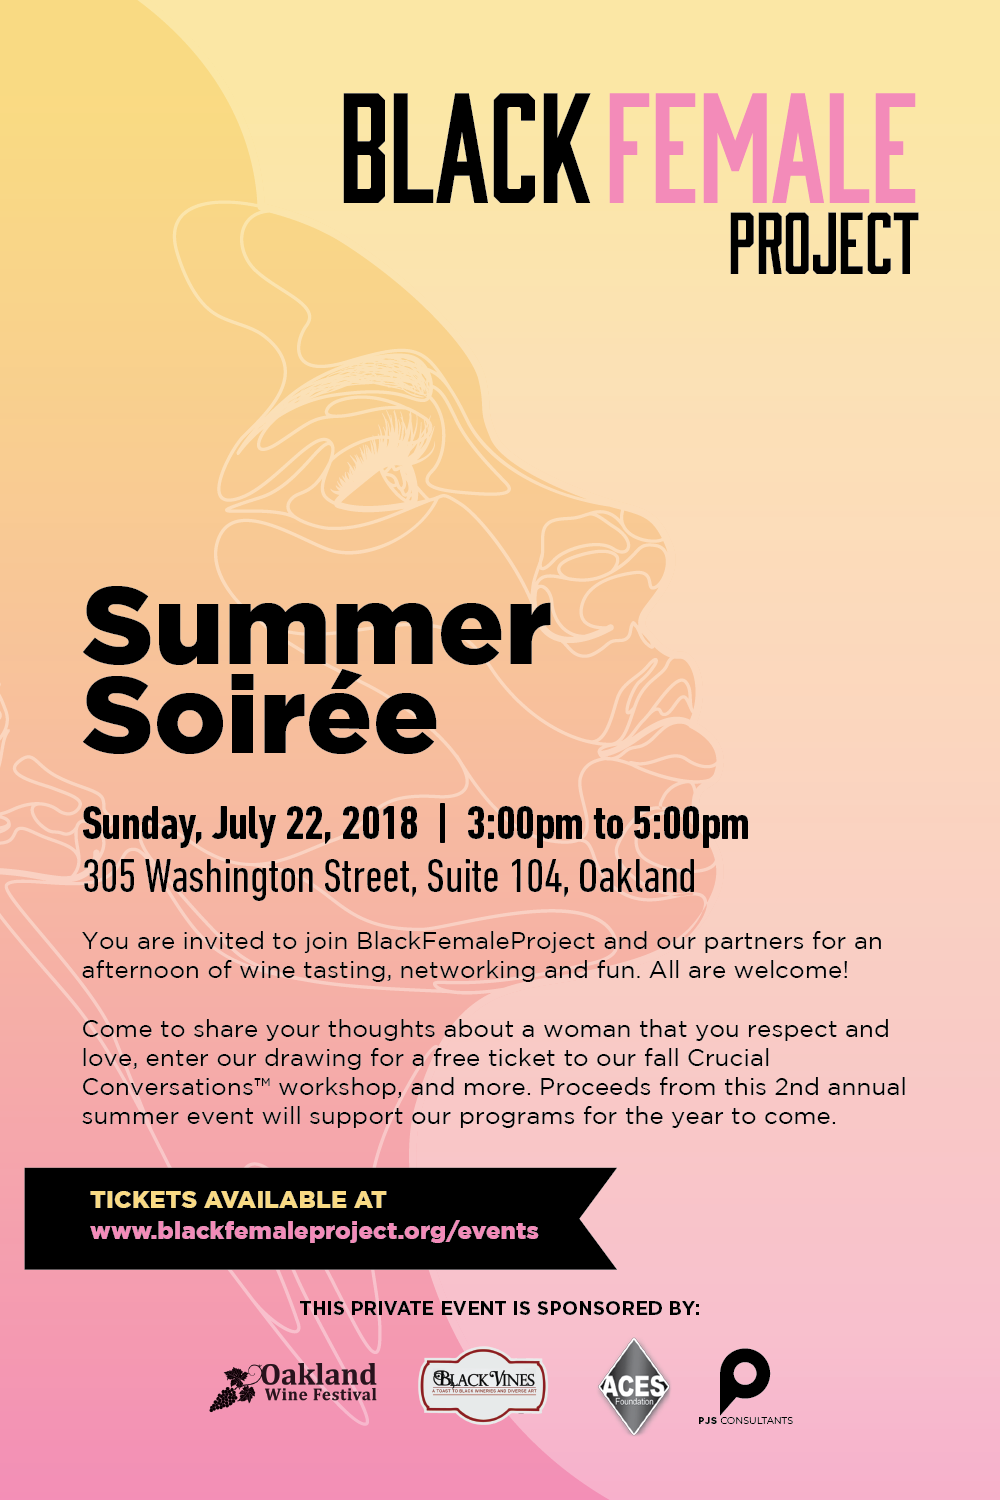 Summer Soiree 2018 Flyerblg.png